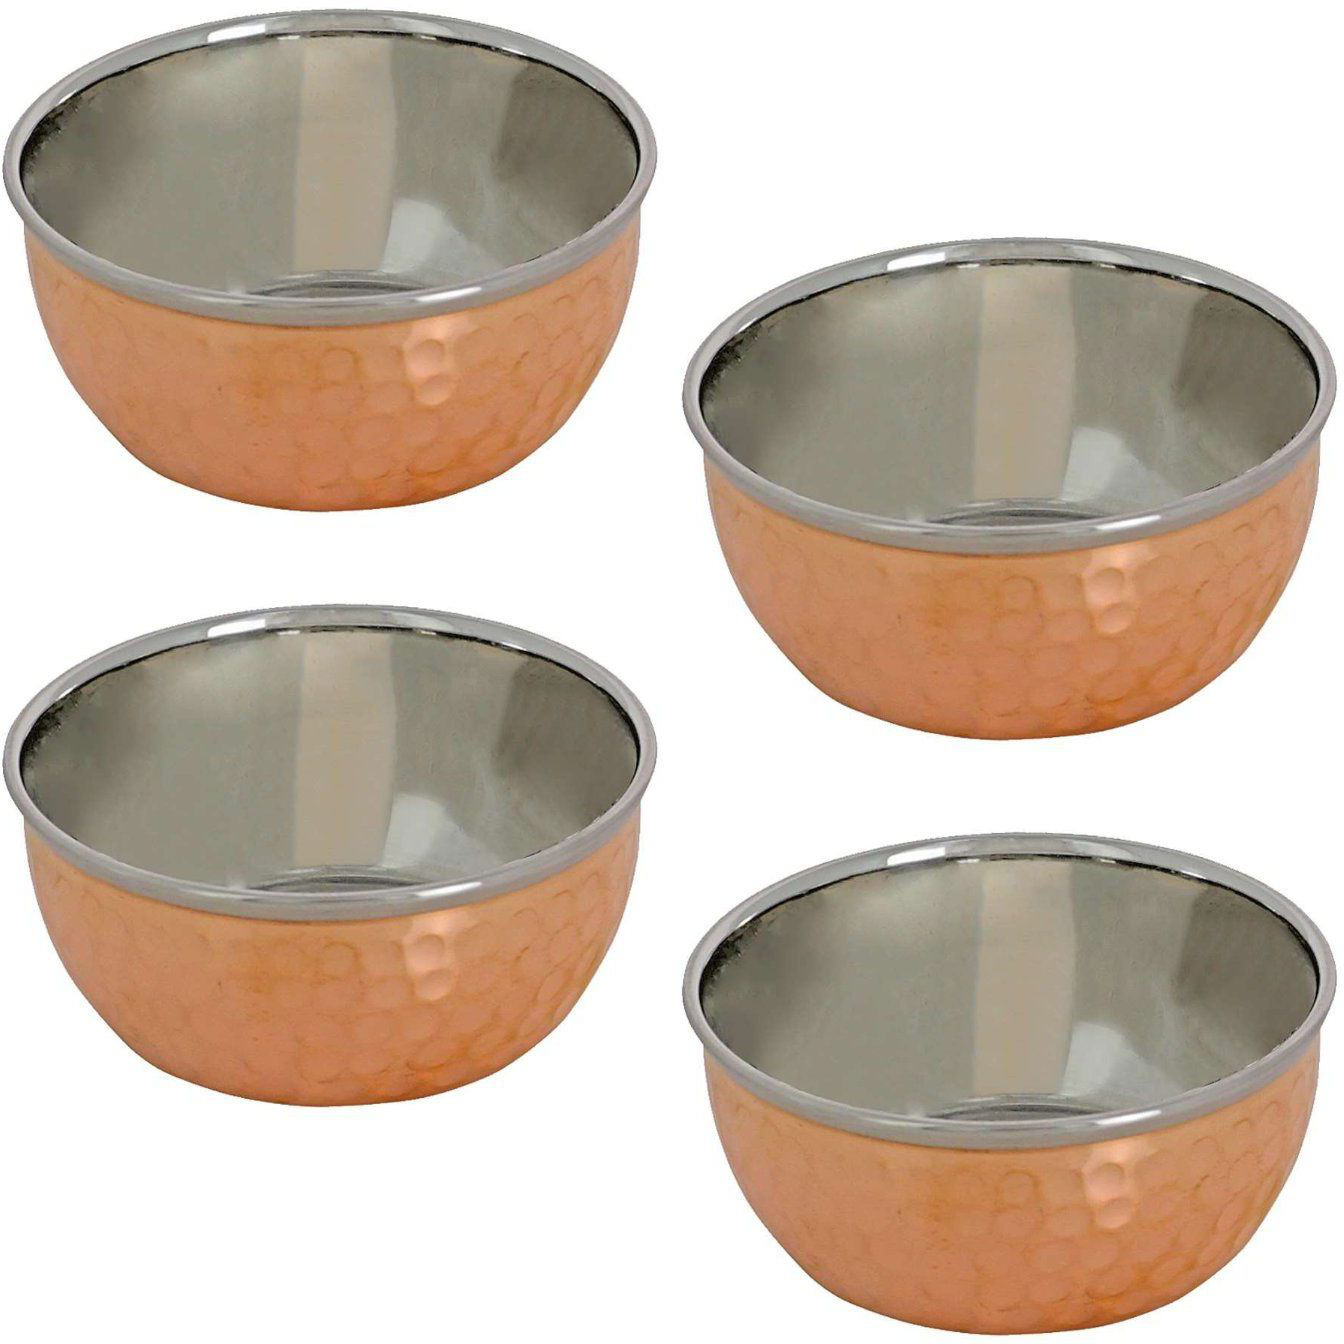 Prisha India Craft B. Set of 3 Dinnerware Traditional Stainless Steel Copper Dinner Set of Thali Plate, Bowls, Glass and Spoons, Dia 13  With 1 Stainless Steel Copper Pitcher Jug - Christmas Gift